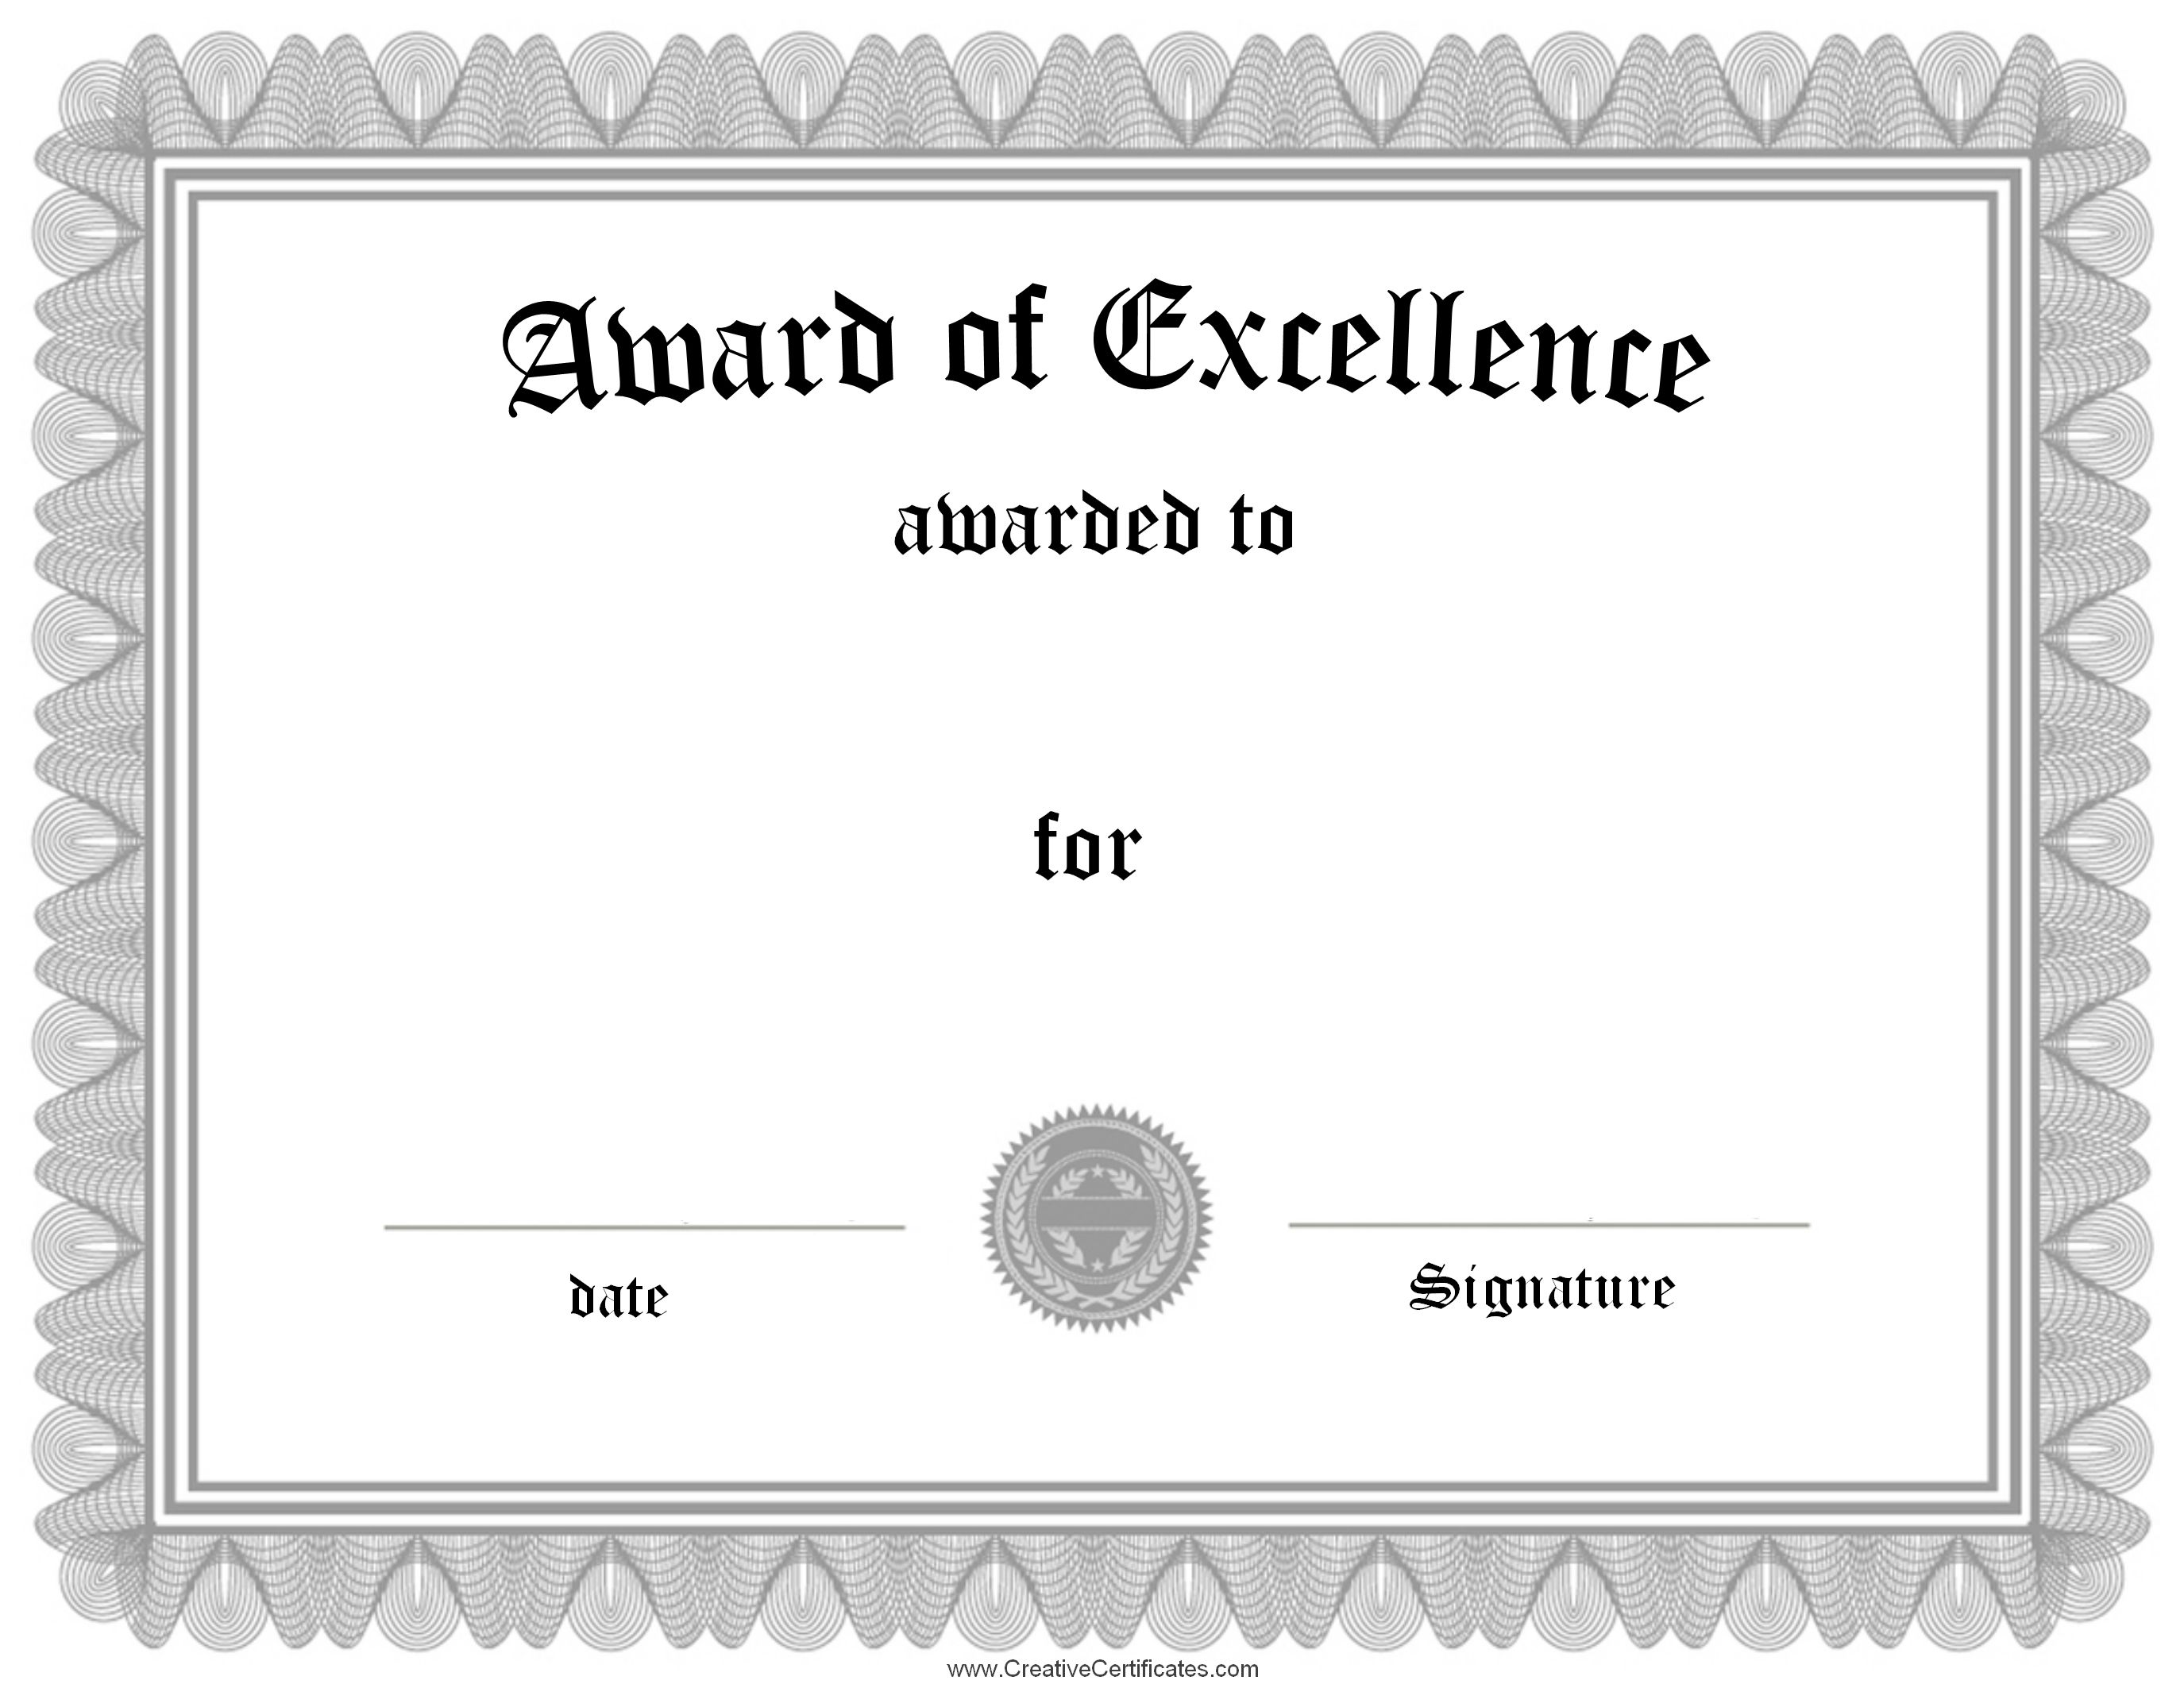 http://www.creativecertificates.com/certificates-achievement ...